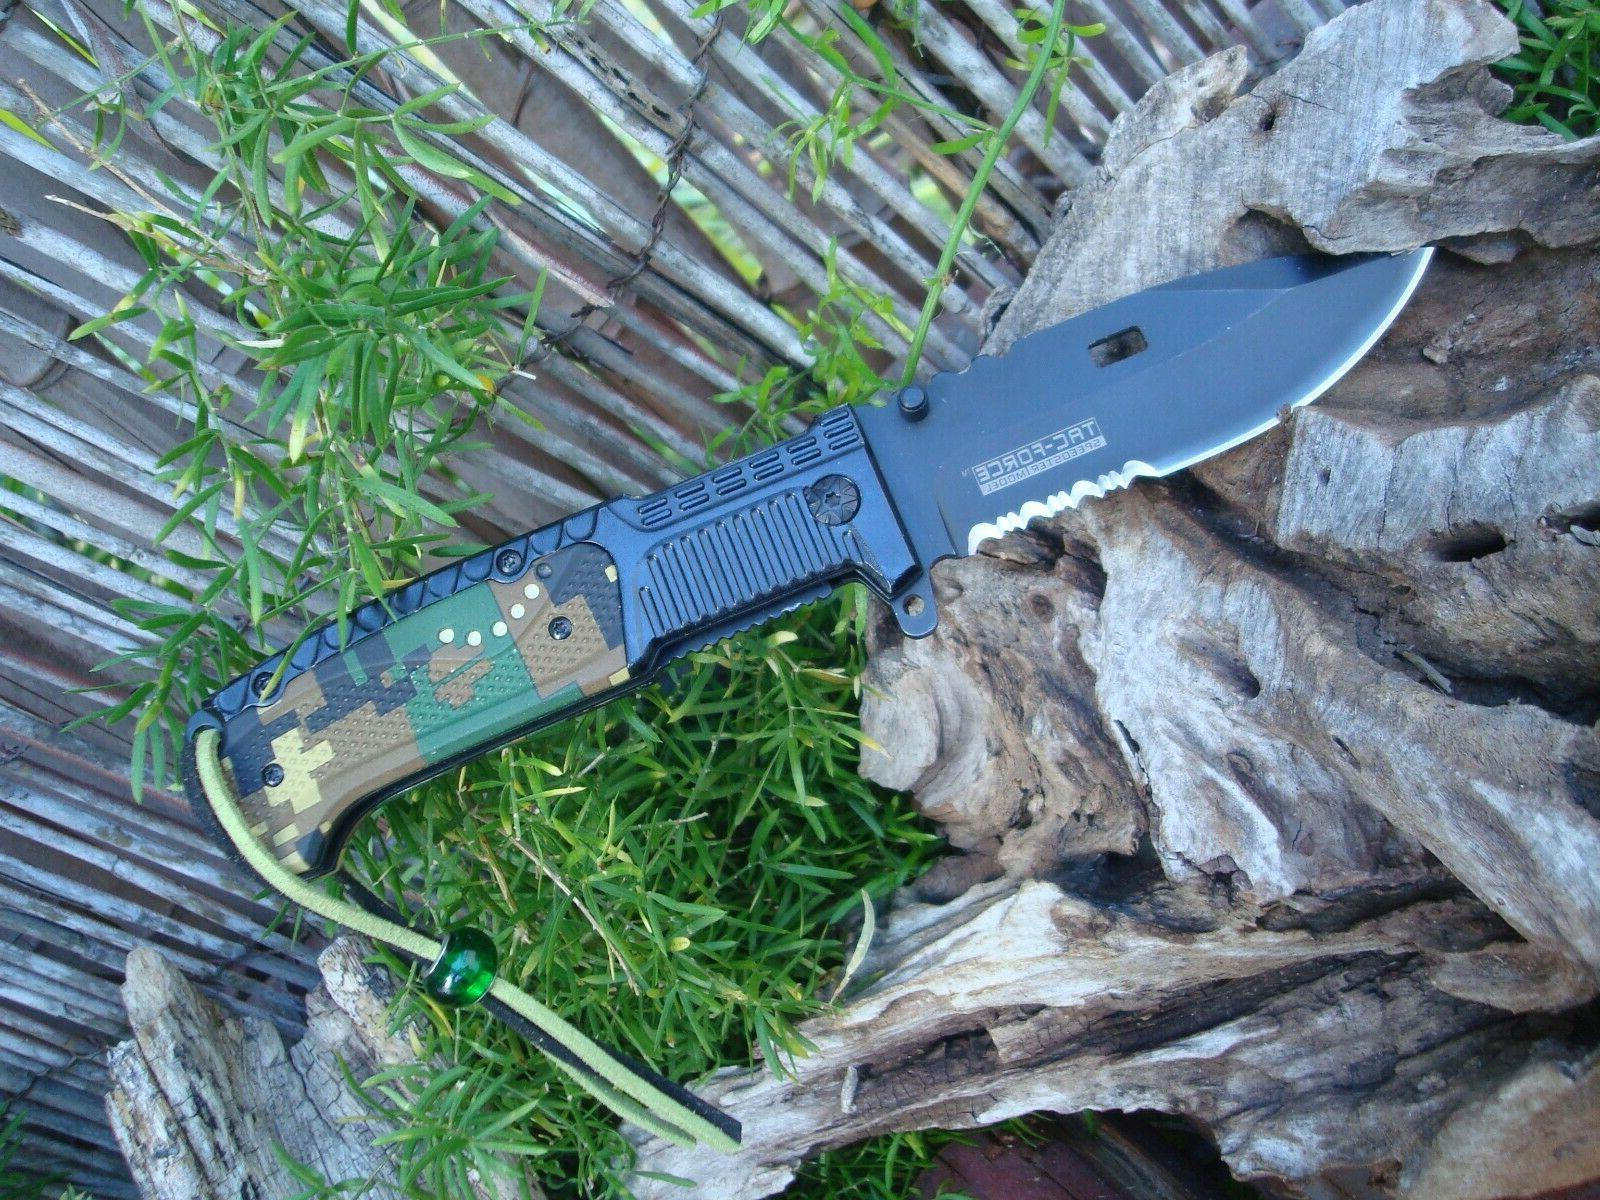 Collectible Fine-Serrated Edge Knife